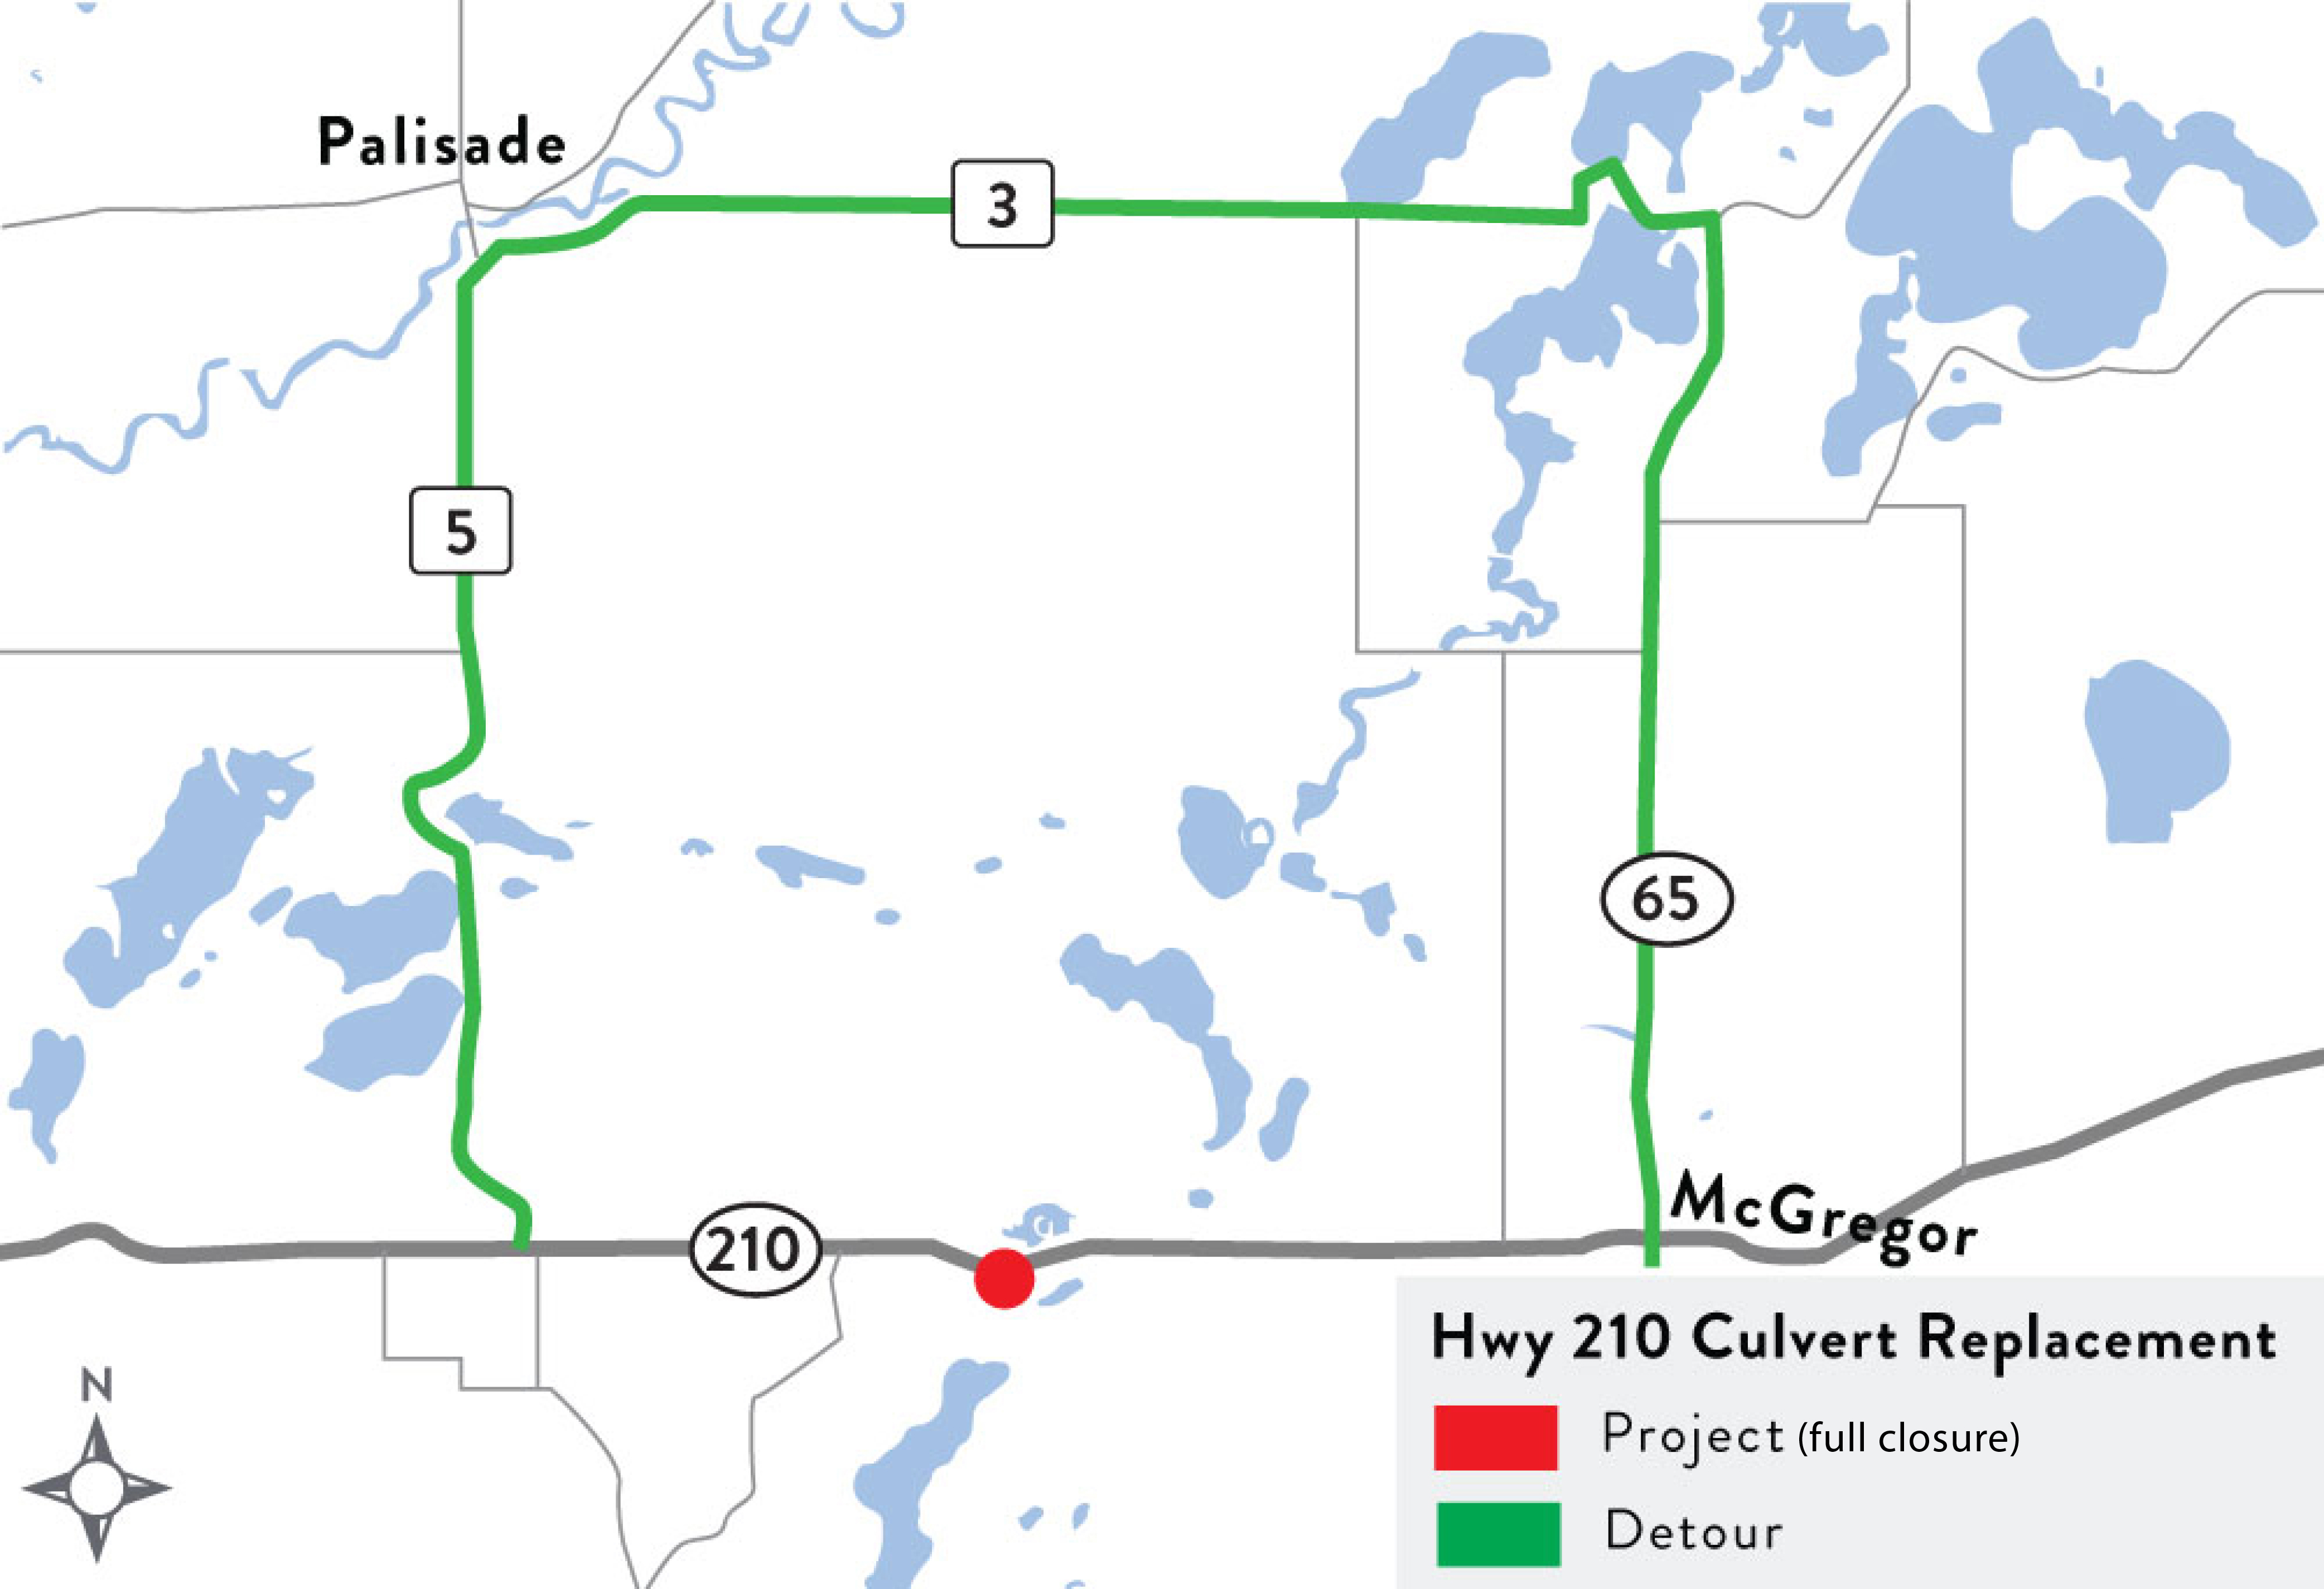 A rendering of the Hwy 210 box culvert replacement and detour.